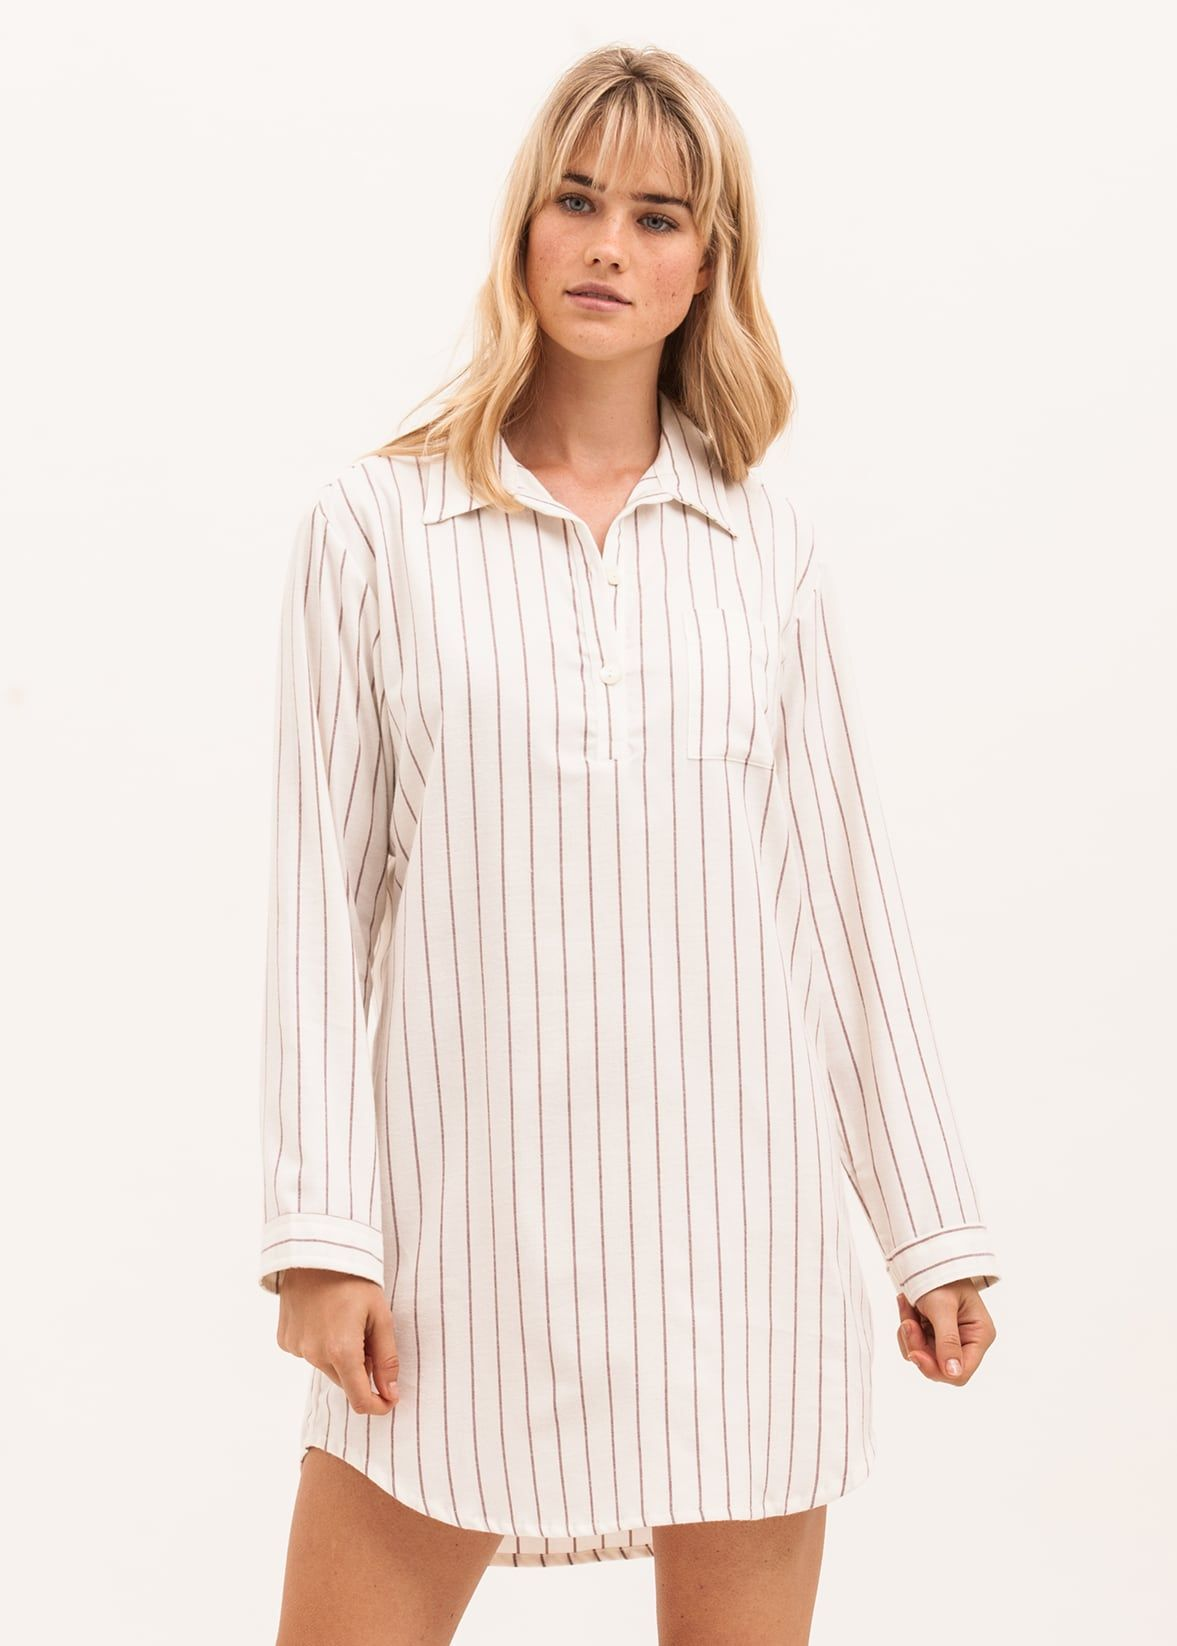 c5651a7d74 Ladies  Luxury Brushed Cotton Nightshirt